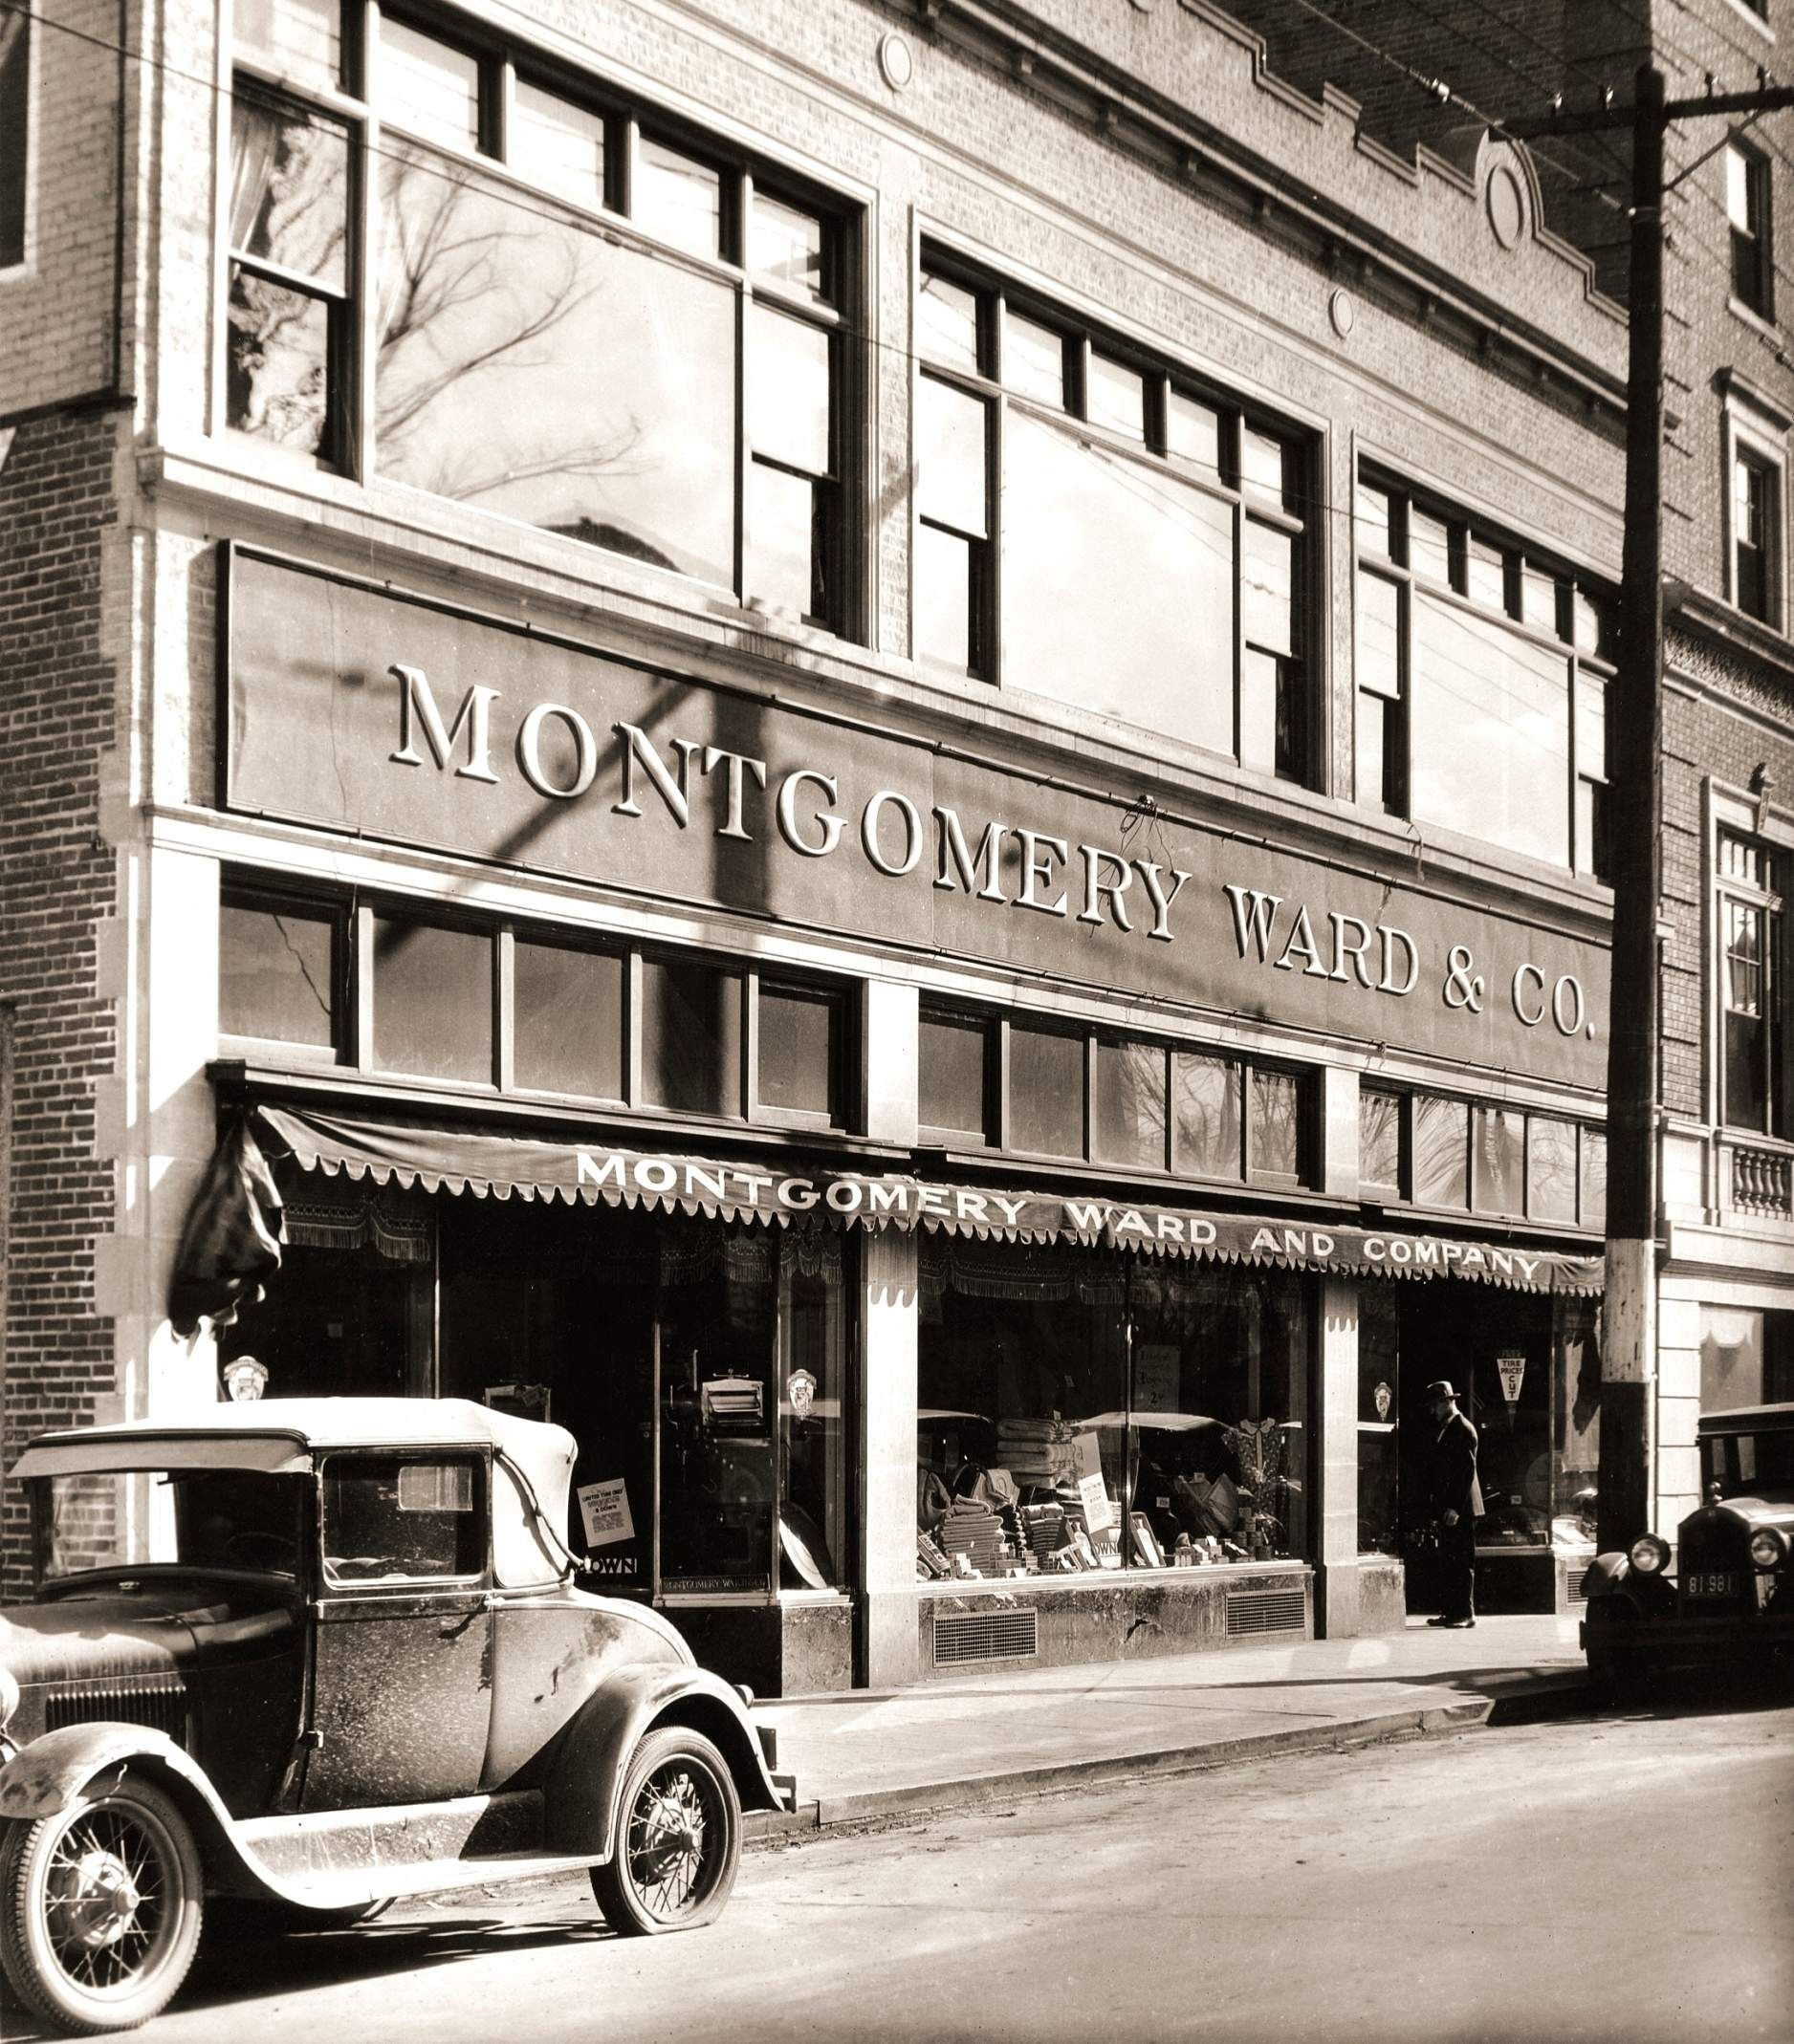 Montgomery Ward opened its Charleston, WV store in September of 1928 next door to the Daniel Boone Hotel.